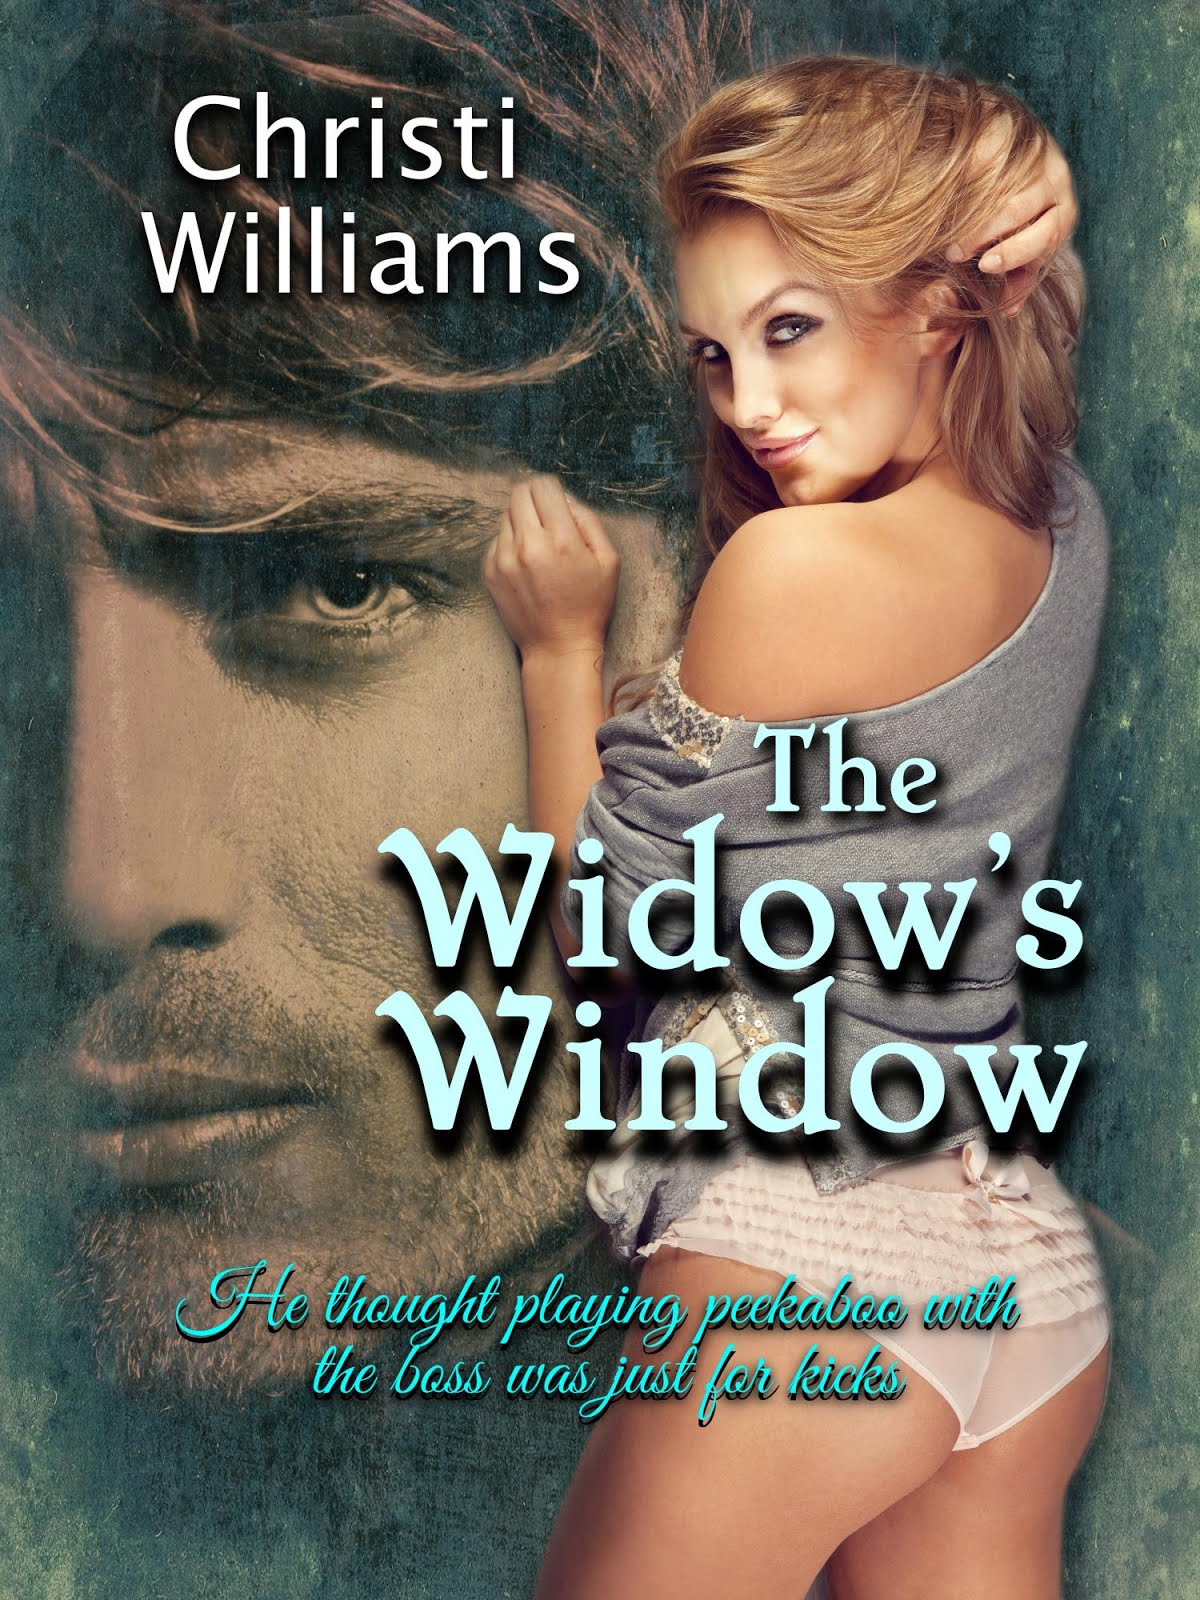 THE WIDOW'S WINDOW